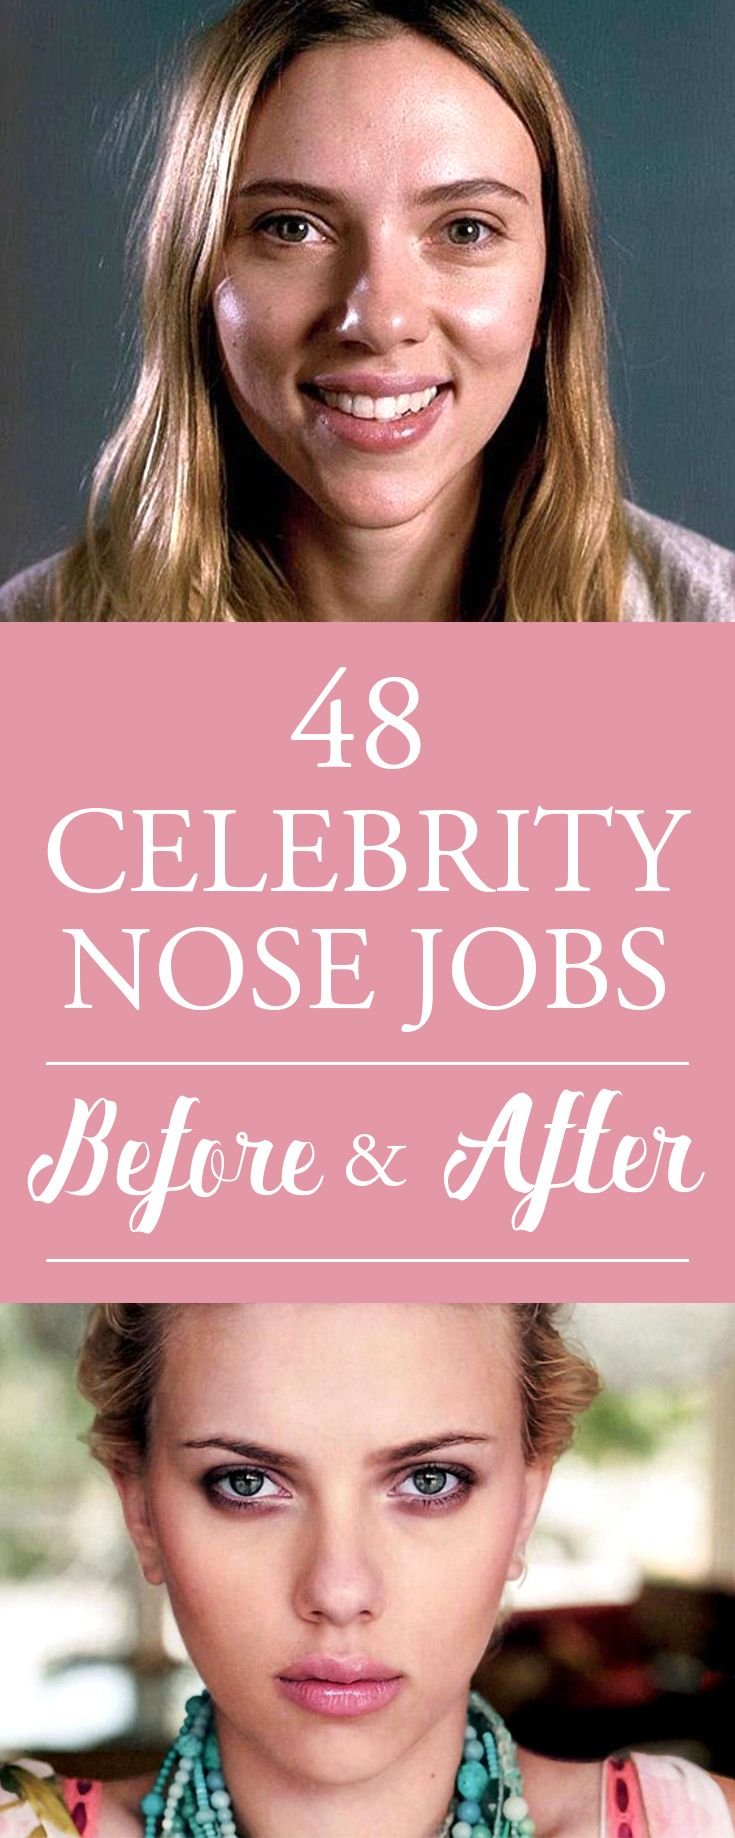 Celebrity nose jobs before and after nose job